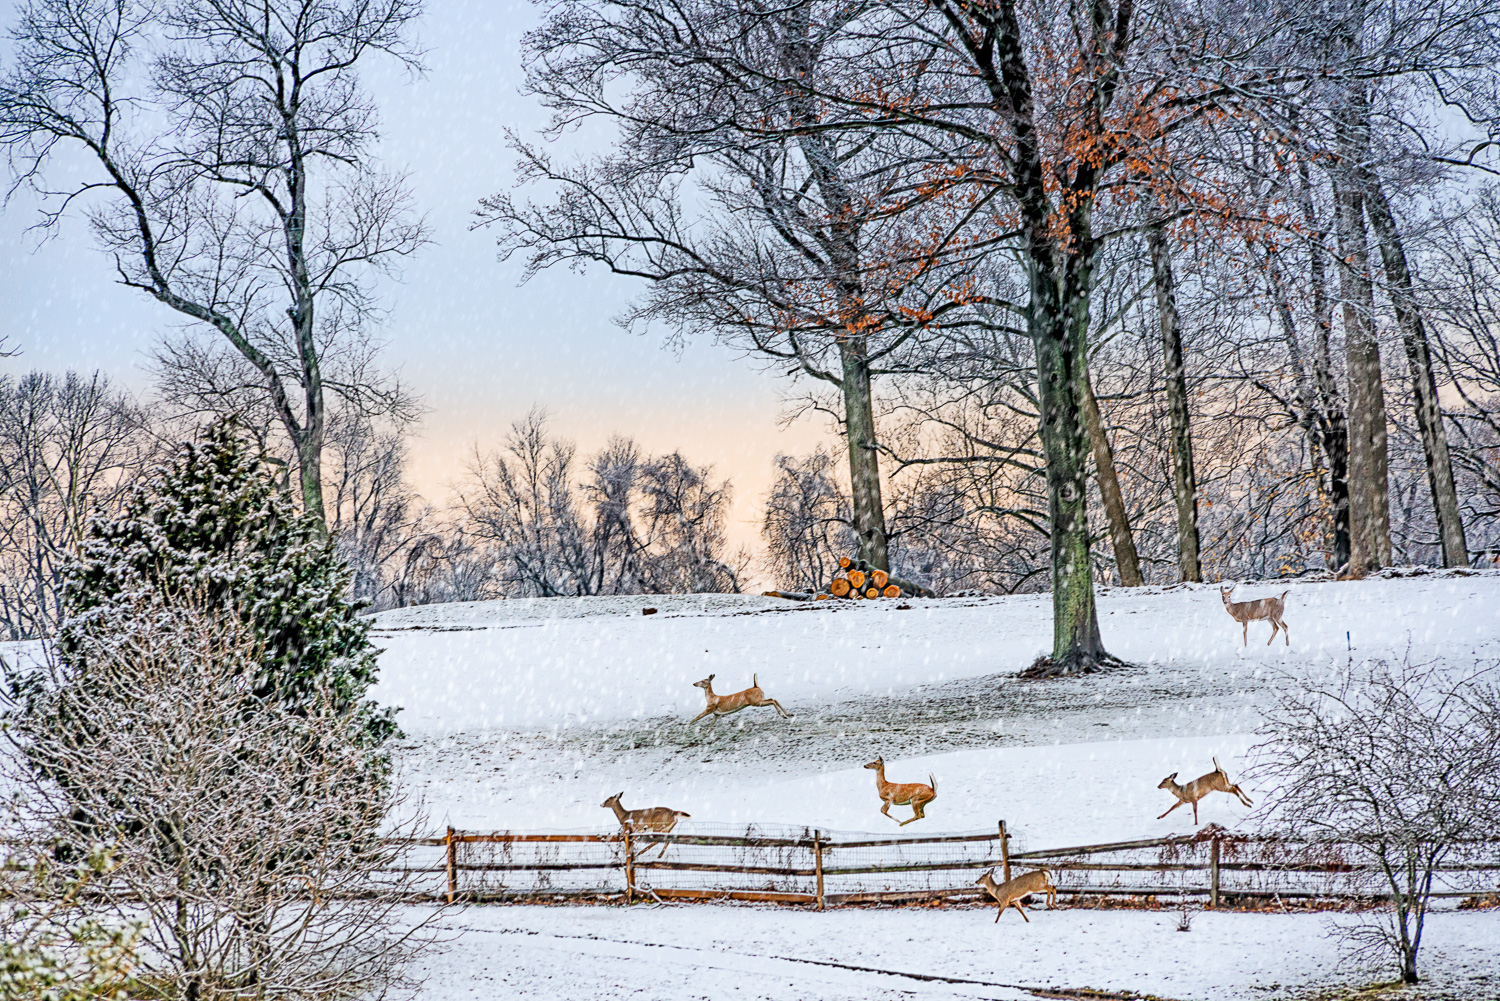 SNOW 2016-02-05-0012-NIK-Deer-Photo-Filter-Snow-Copy